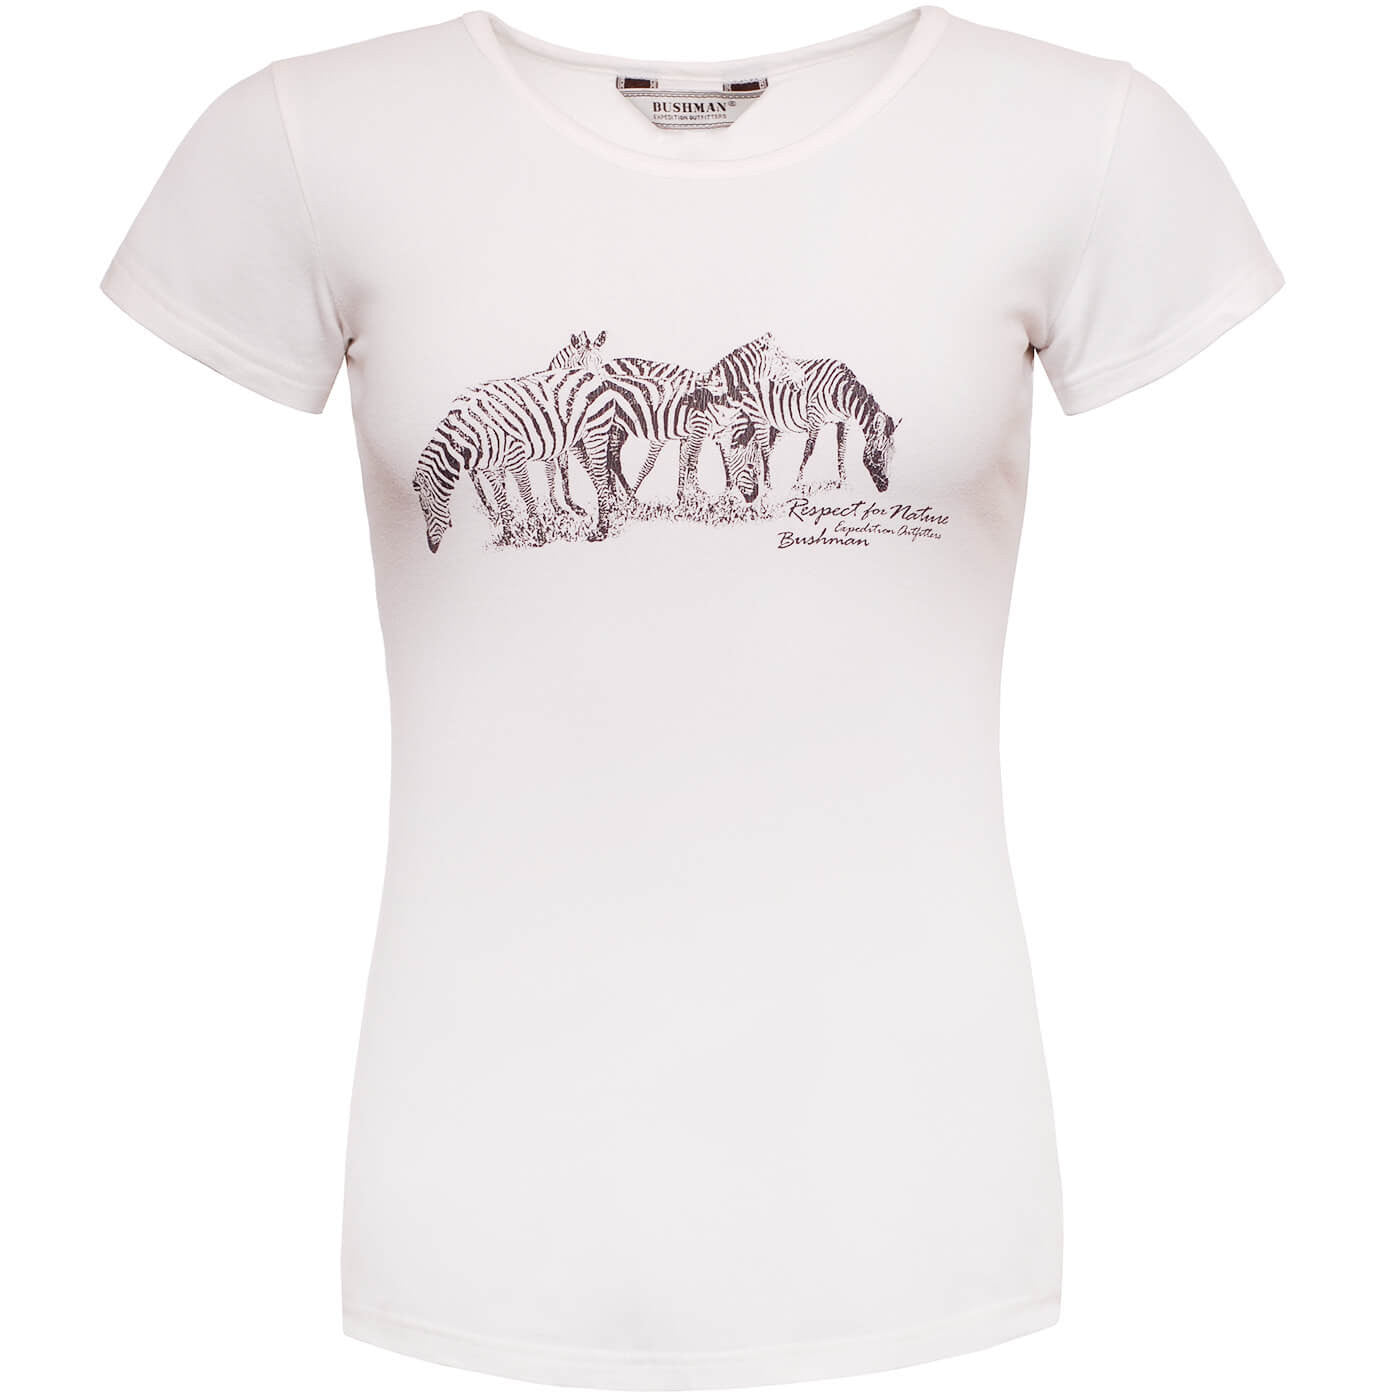 BUSHMANSHOP JANE WOMEN'S WHITE ZEBRA AFRICA COTTON SHORT SLEEVE T-SHIRT